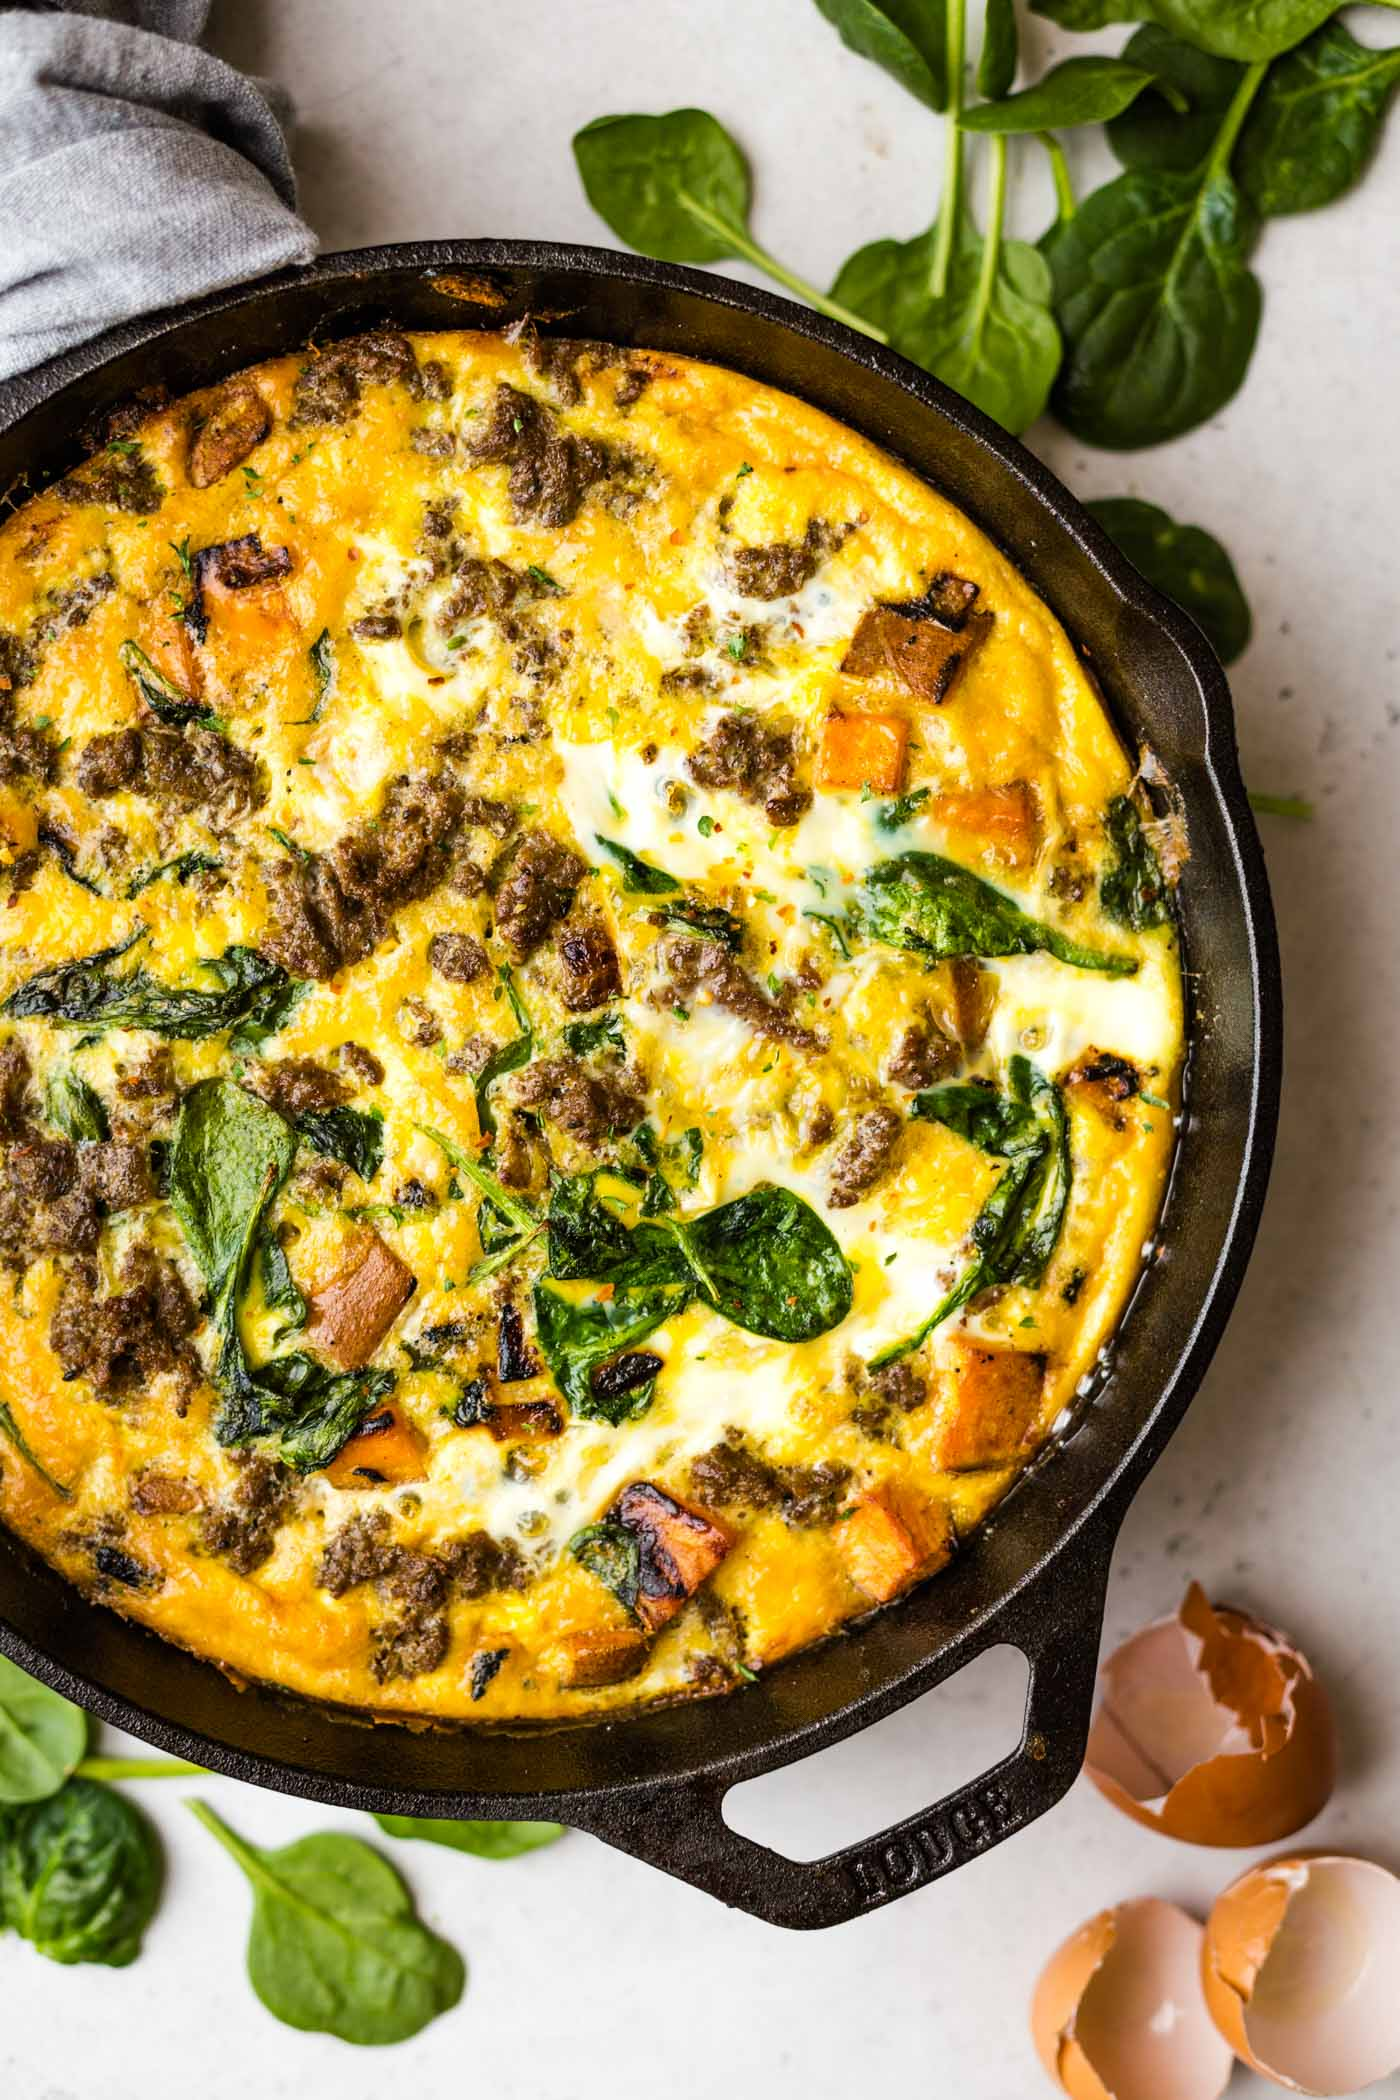 Paleo Sweet Potato and Sausage Frittata in cast iron skillet with cracked eggs and spinach and the background